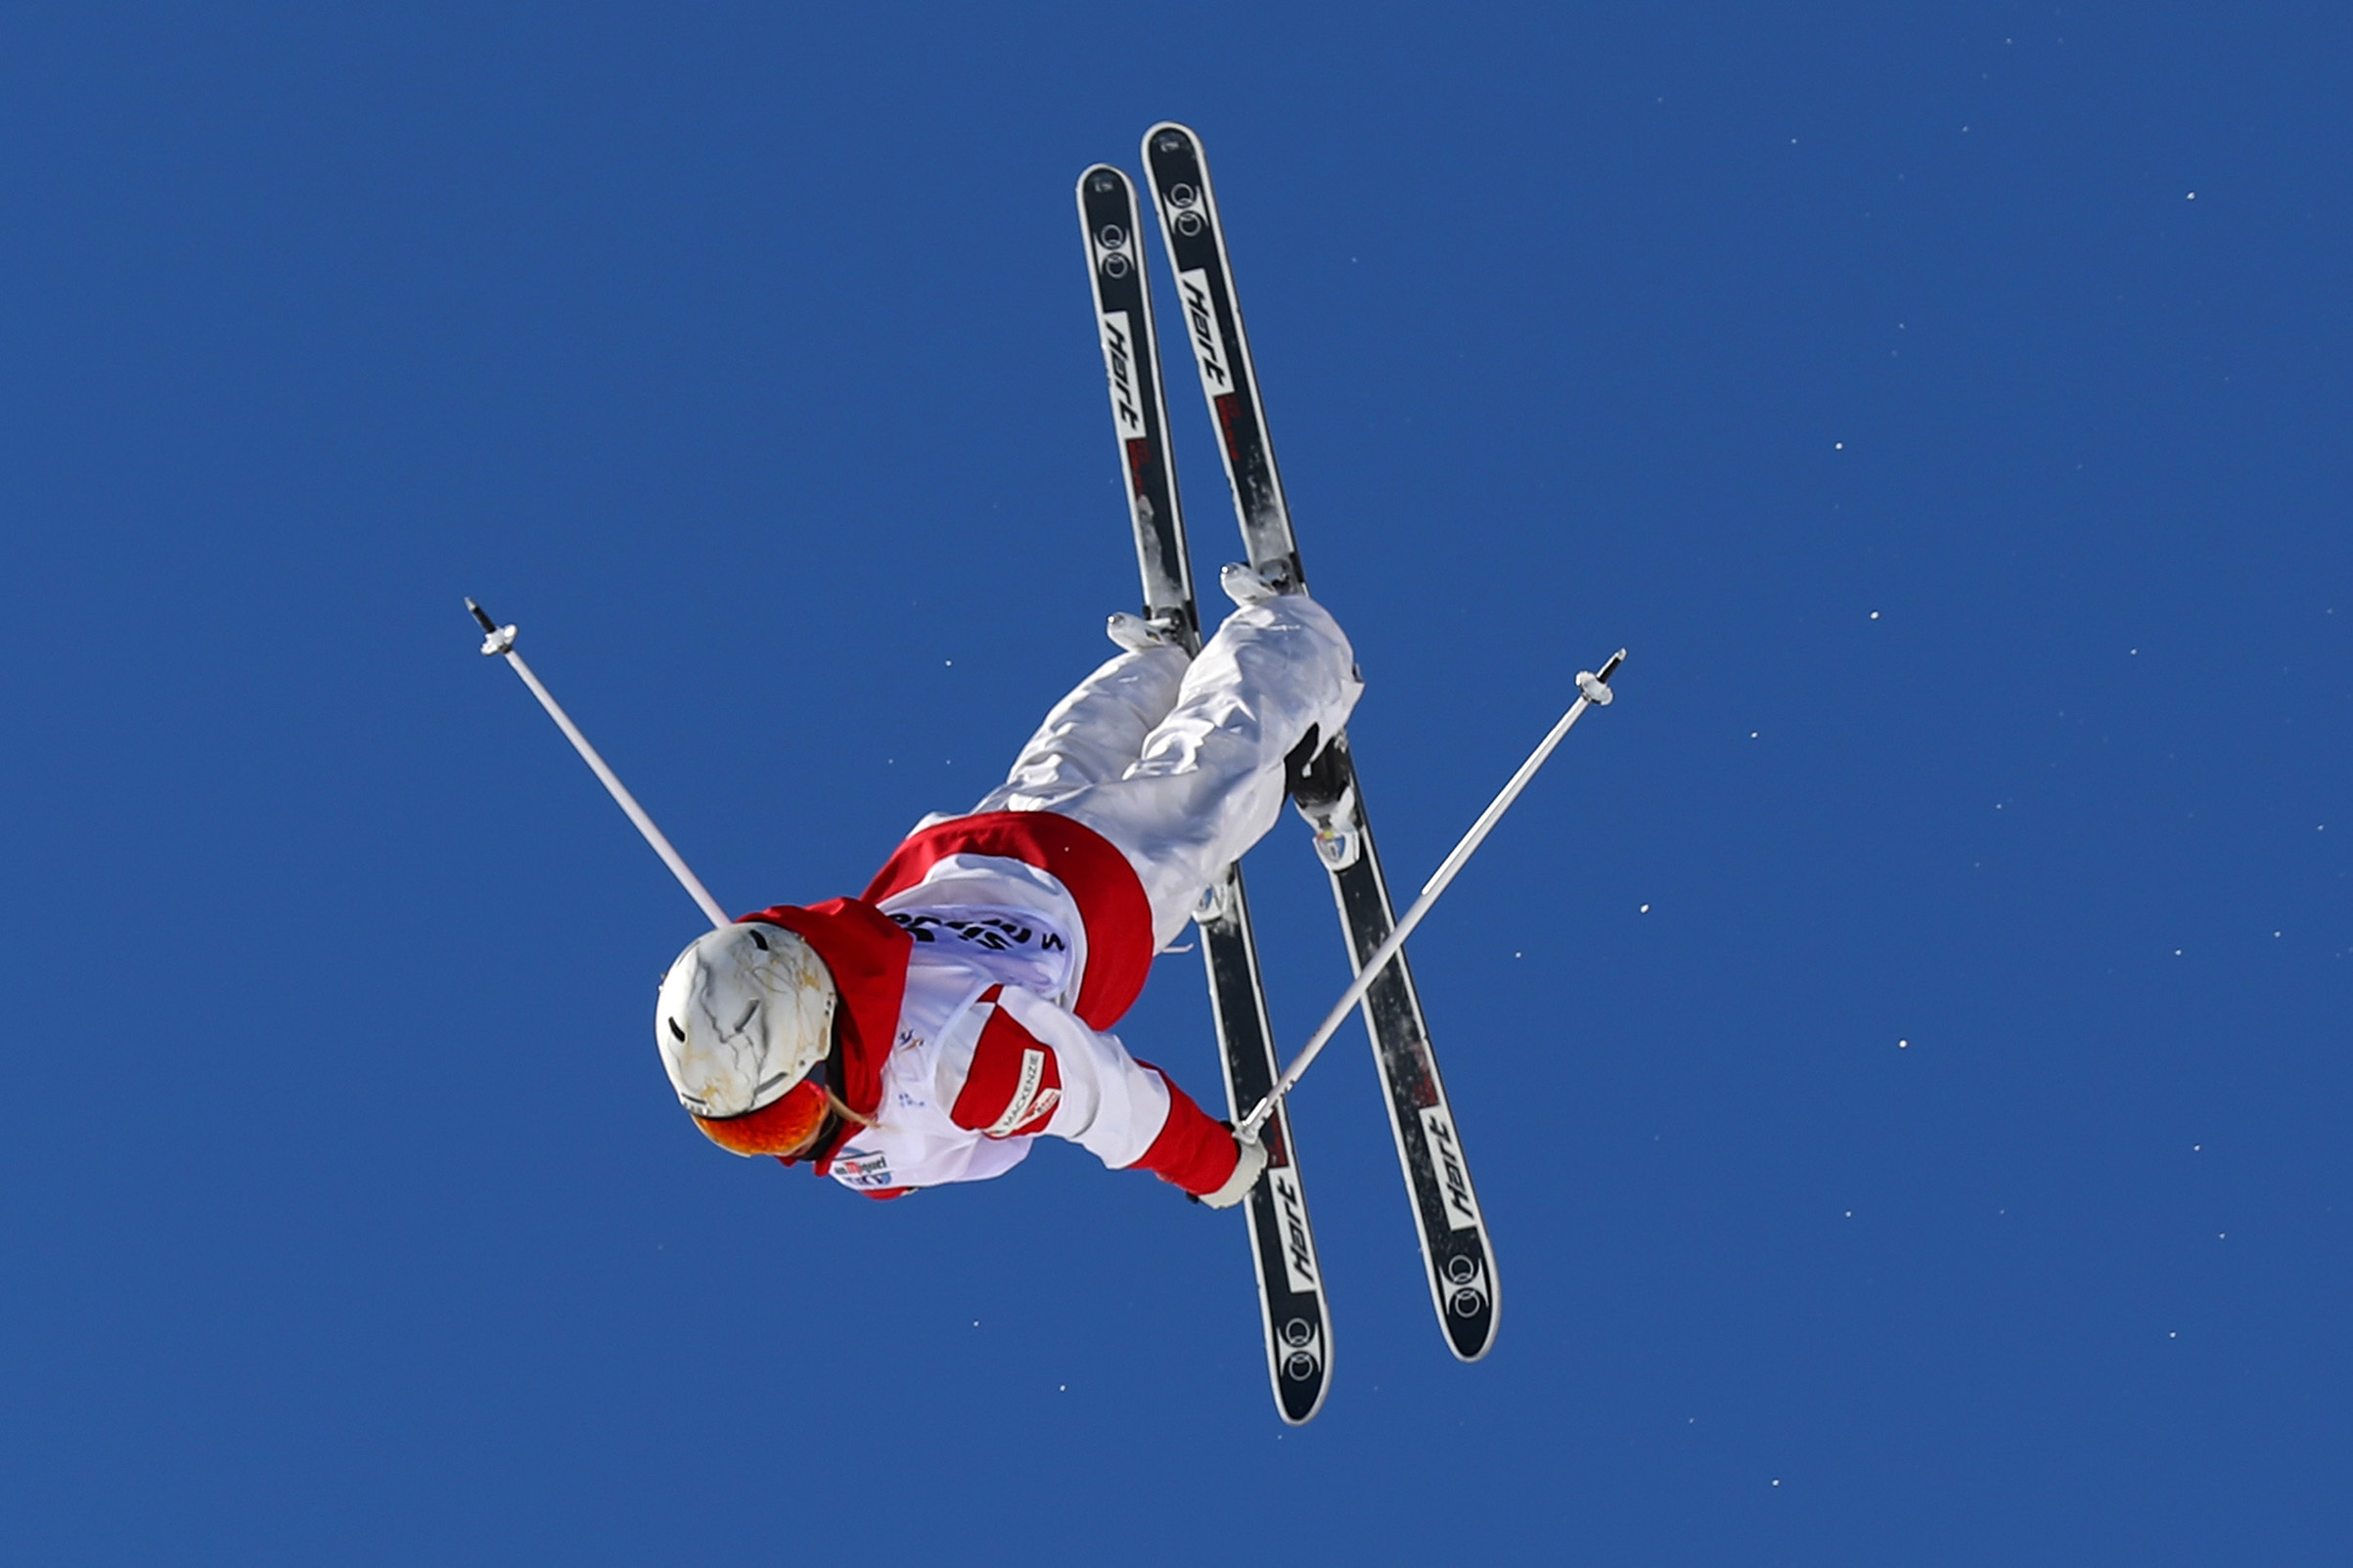 Olympic athlete Justine Dufour-Lapointe of Canada competes in the Women's Moguls qualification at the FIS Freestyle Ski & Snowboard World Championships in Sierra Nevada, Spain, on March 8, 2017. Clive Rose—Getty Images